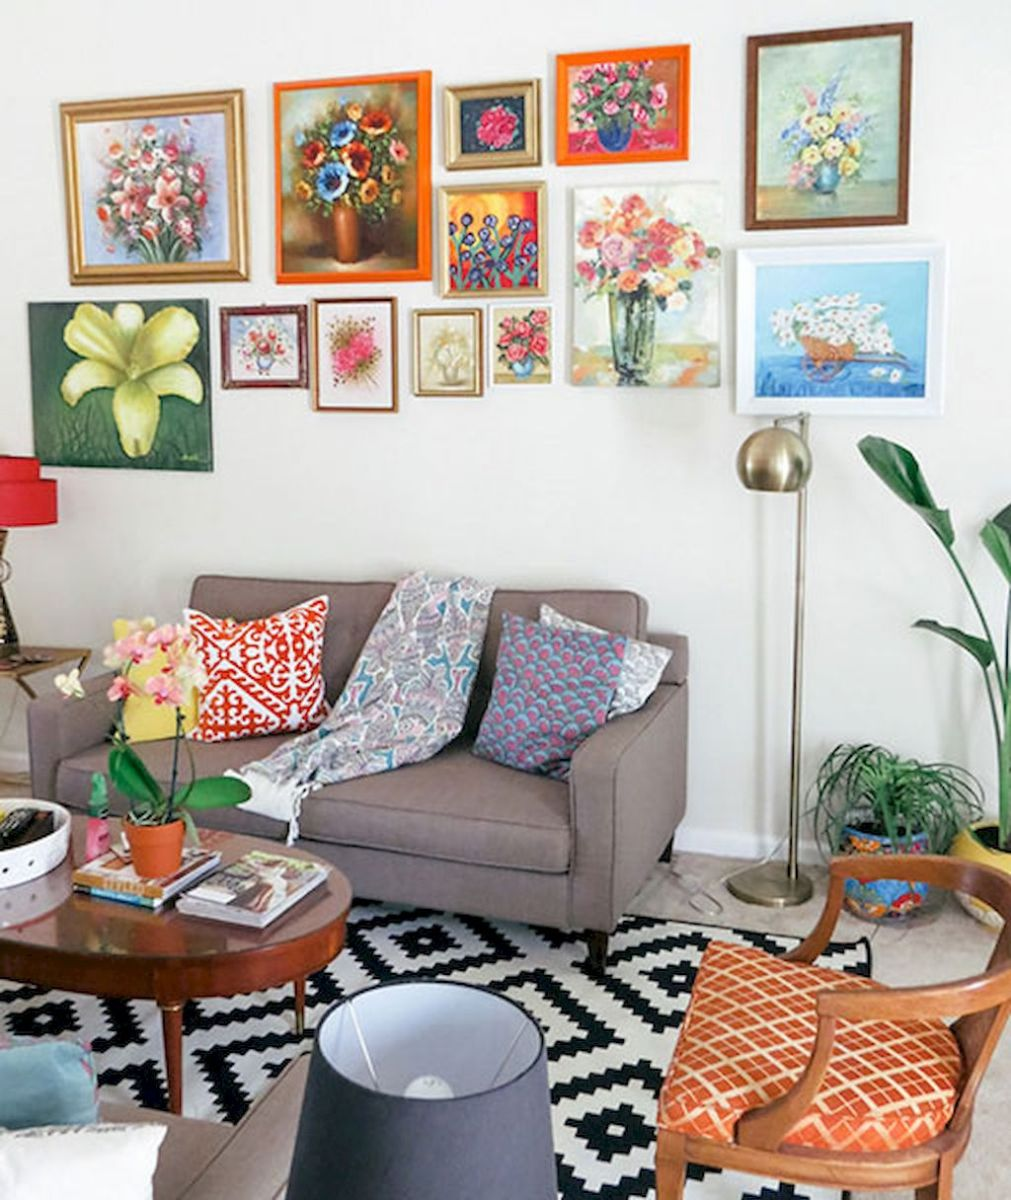 Simple image and Arrangement Tips to Make your Own Gallery Wall Ideas Part 32